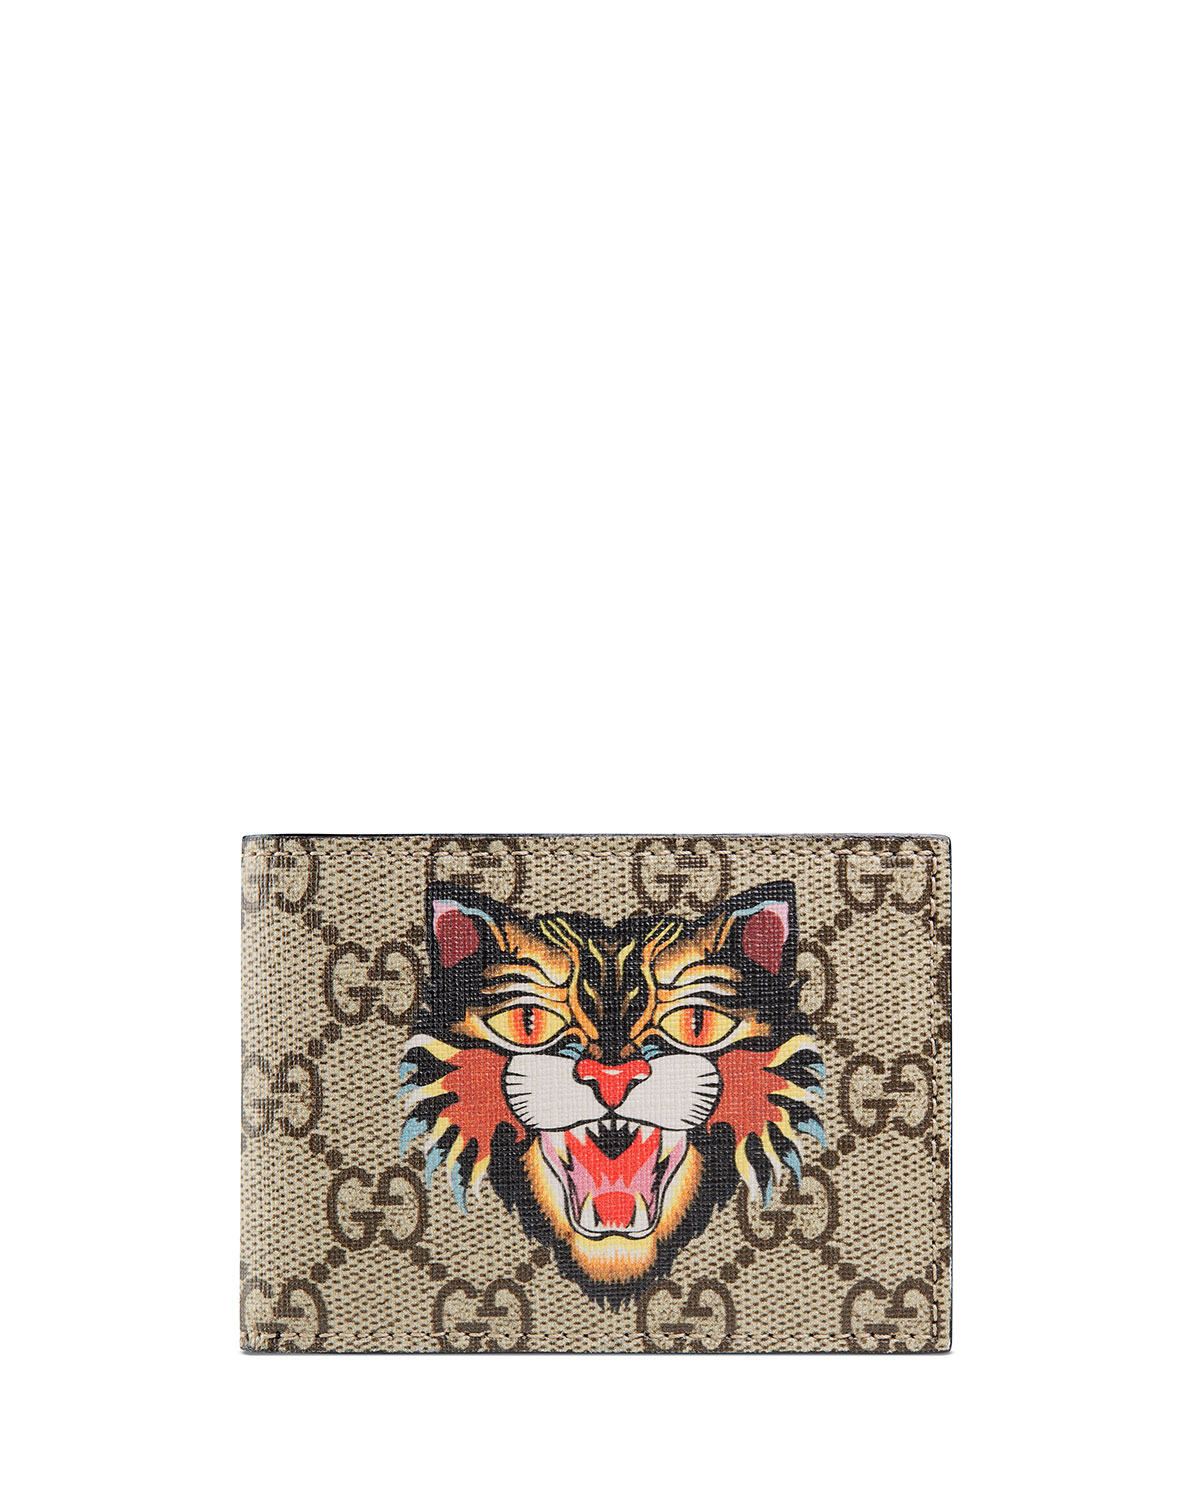 685fe246c8c45e Gucci Angry Cat GG Supreme Wallet | Neiman Marcus